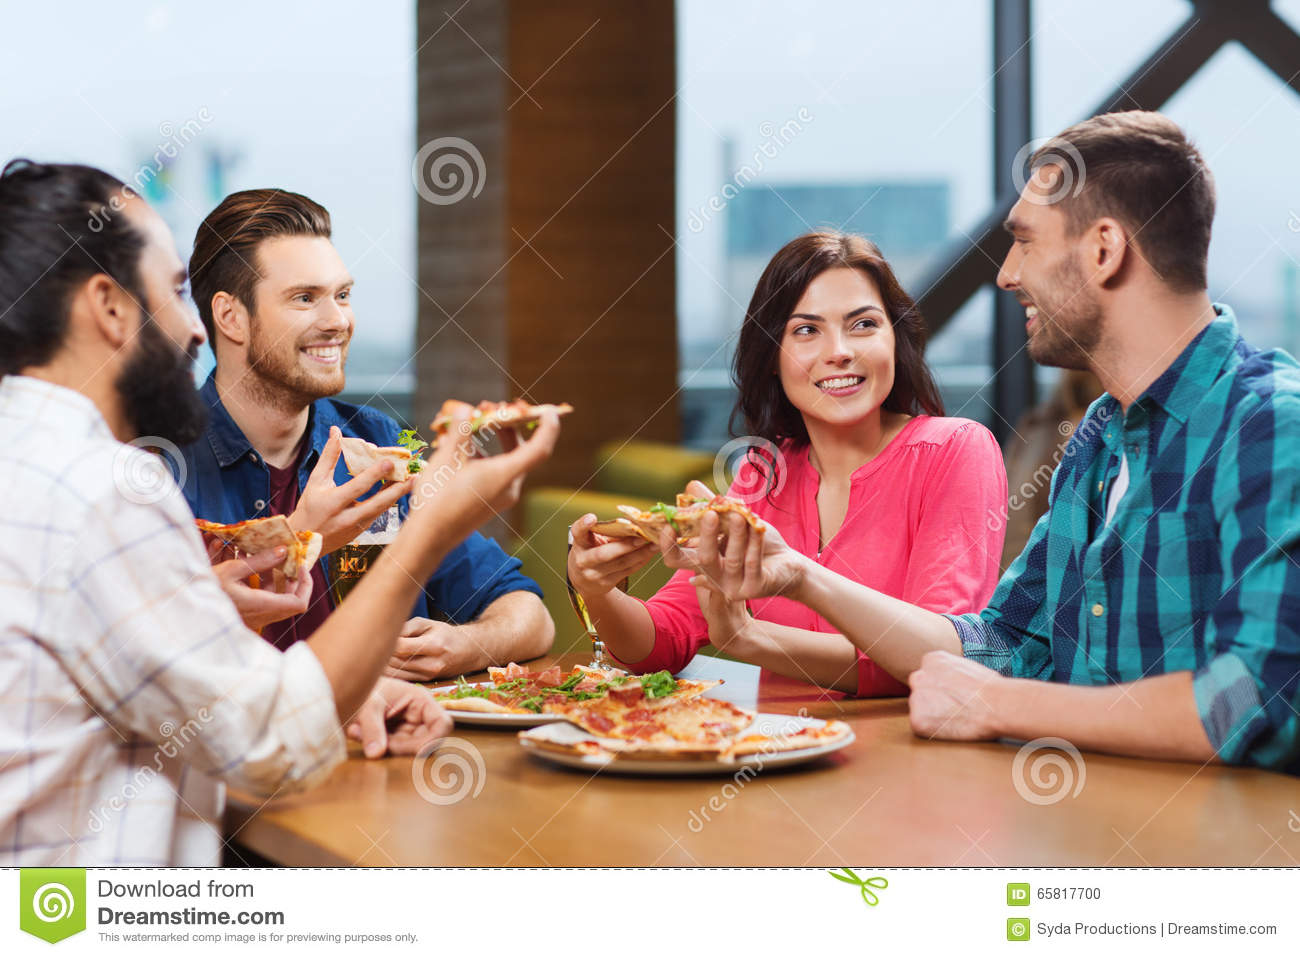 ... smiling friends eating pizza and drinking beer at restaurant or pub